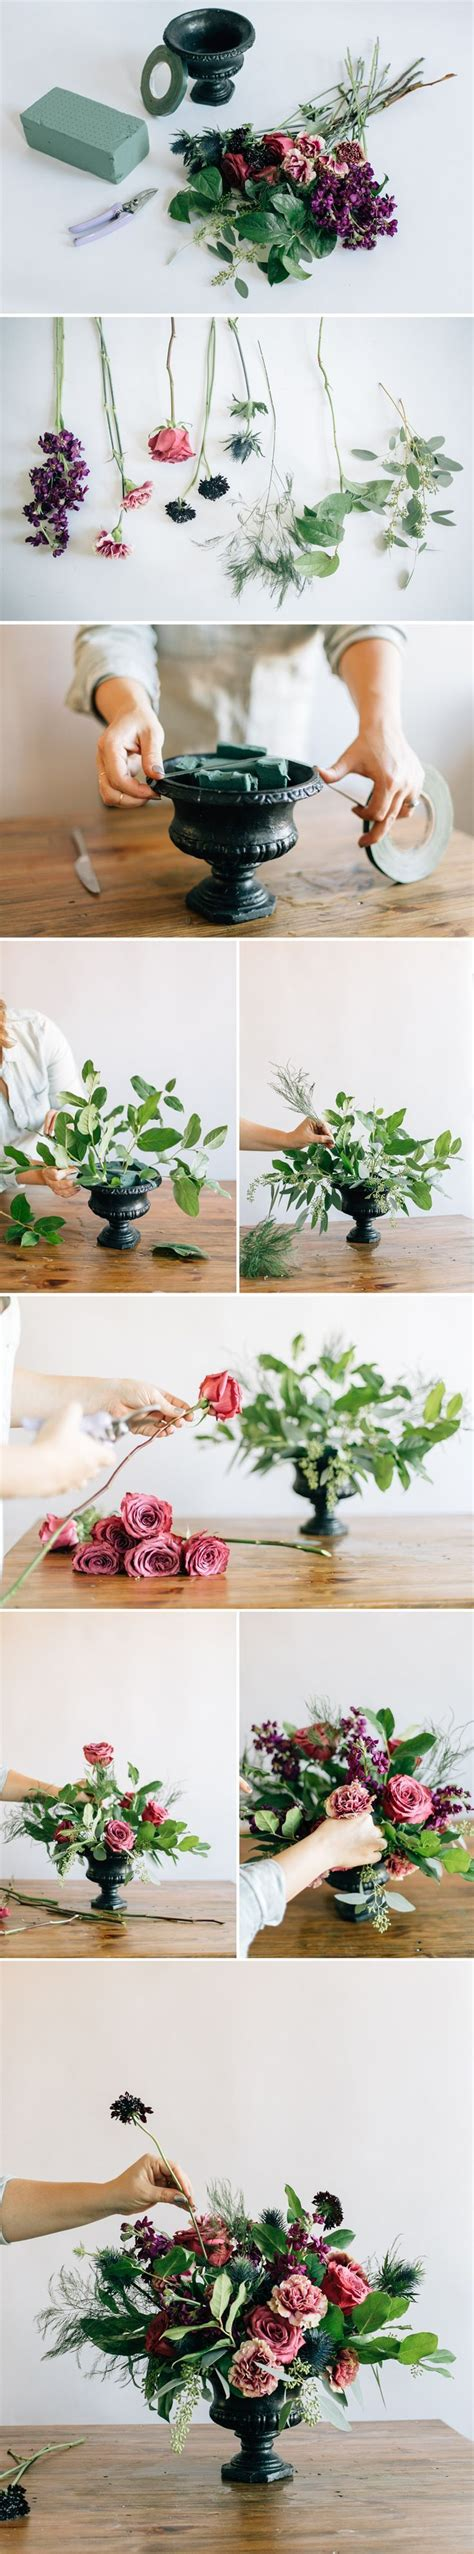 how to diy a floral urn centerpiece flowers plants